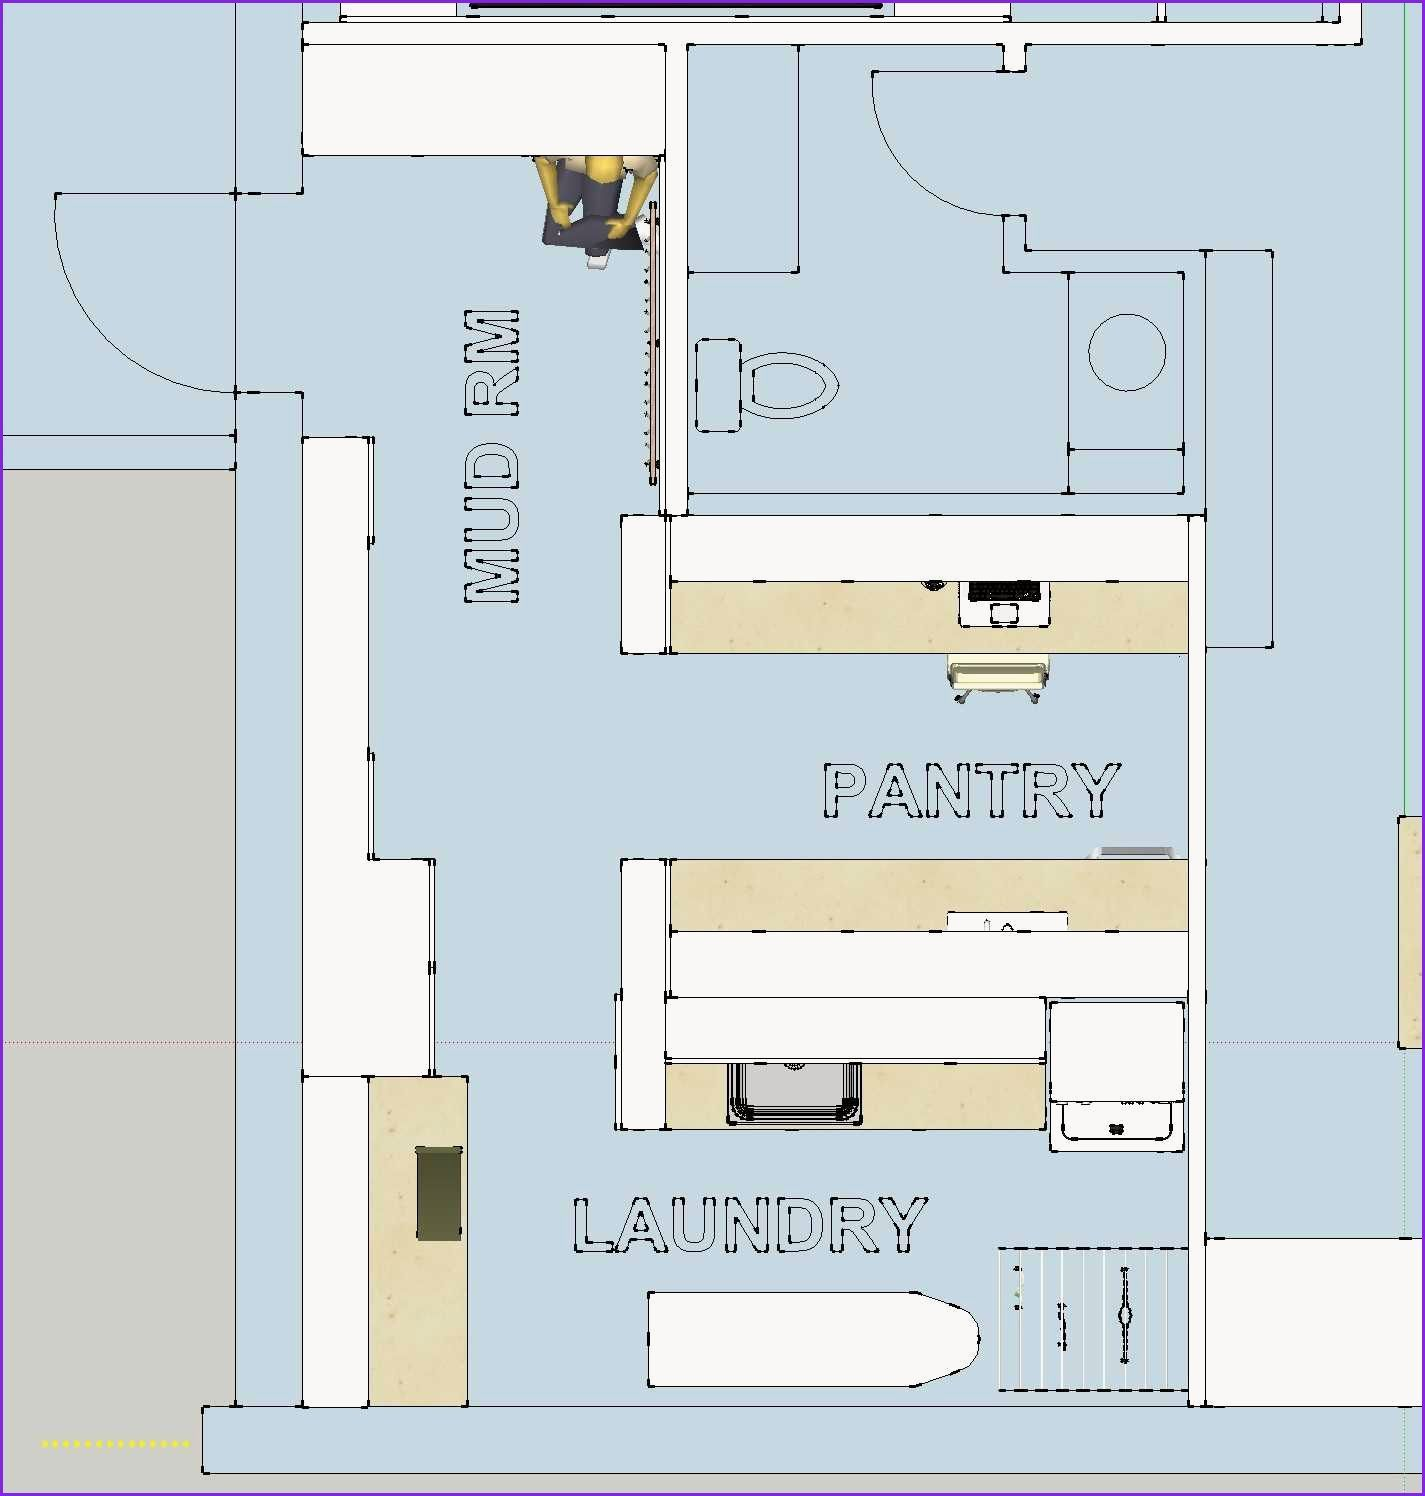 Awesome House Plans With Mudroom Awesome House Mudroom Plans Laundry Room Layouts Laundry In Bathroom Mudroom Floor Plan